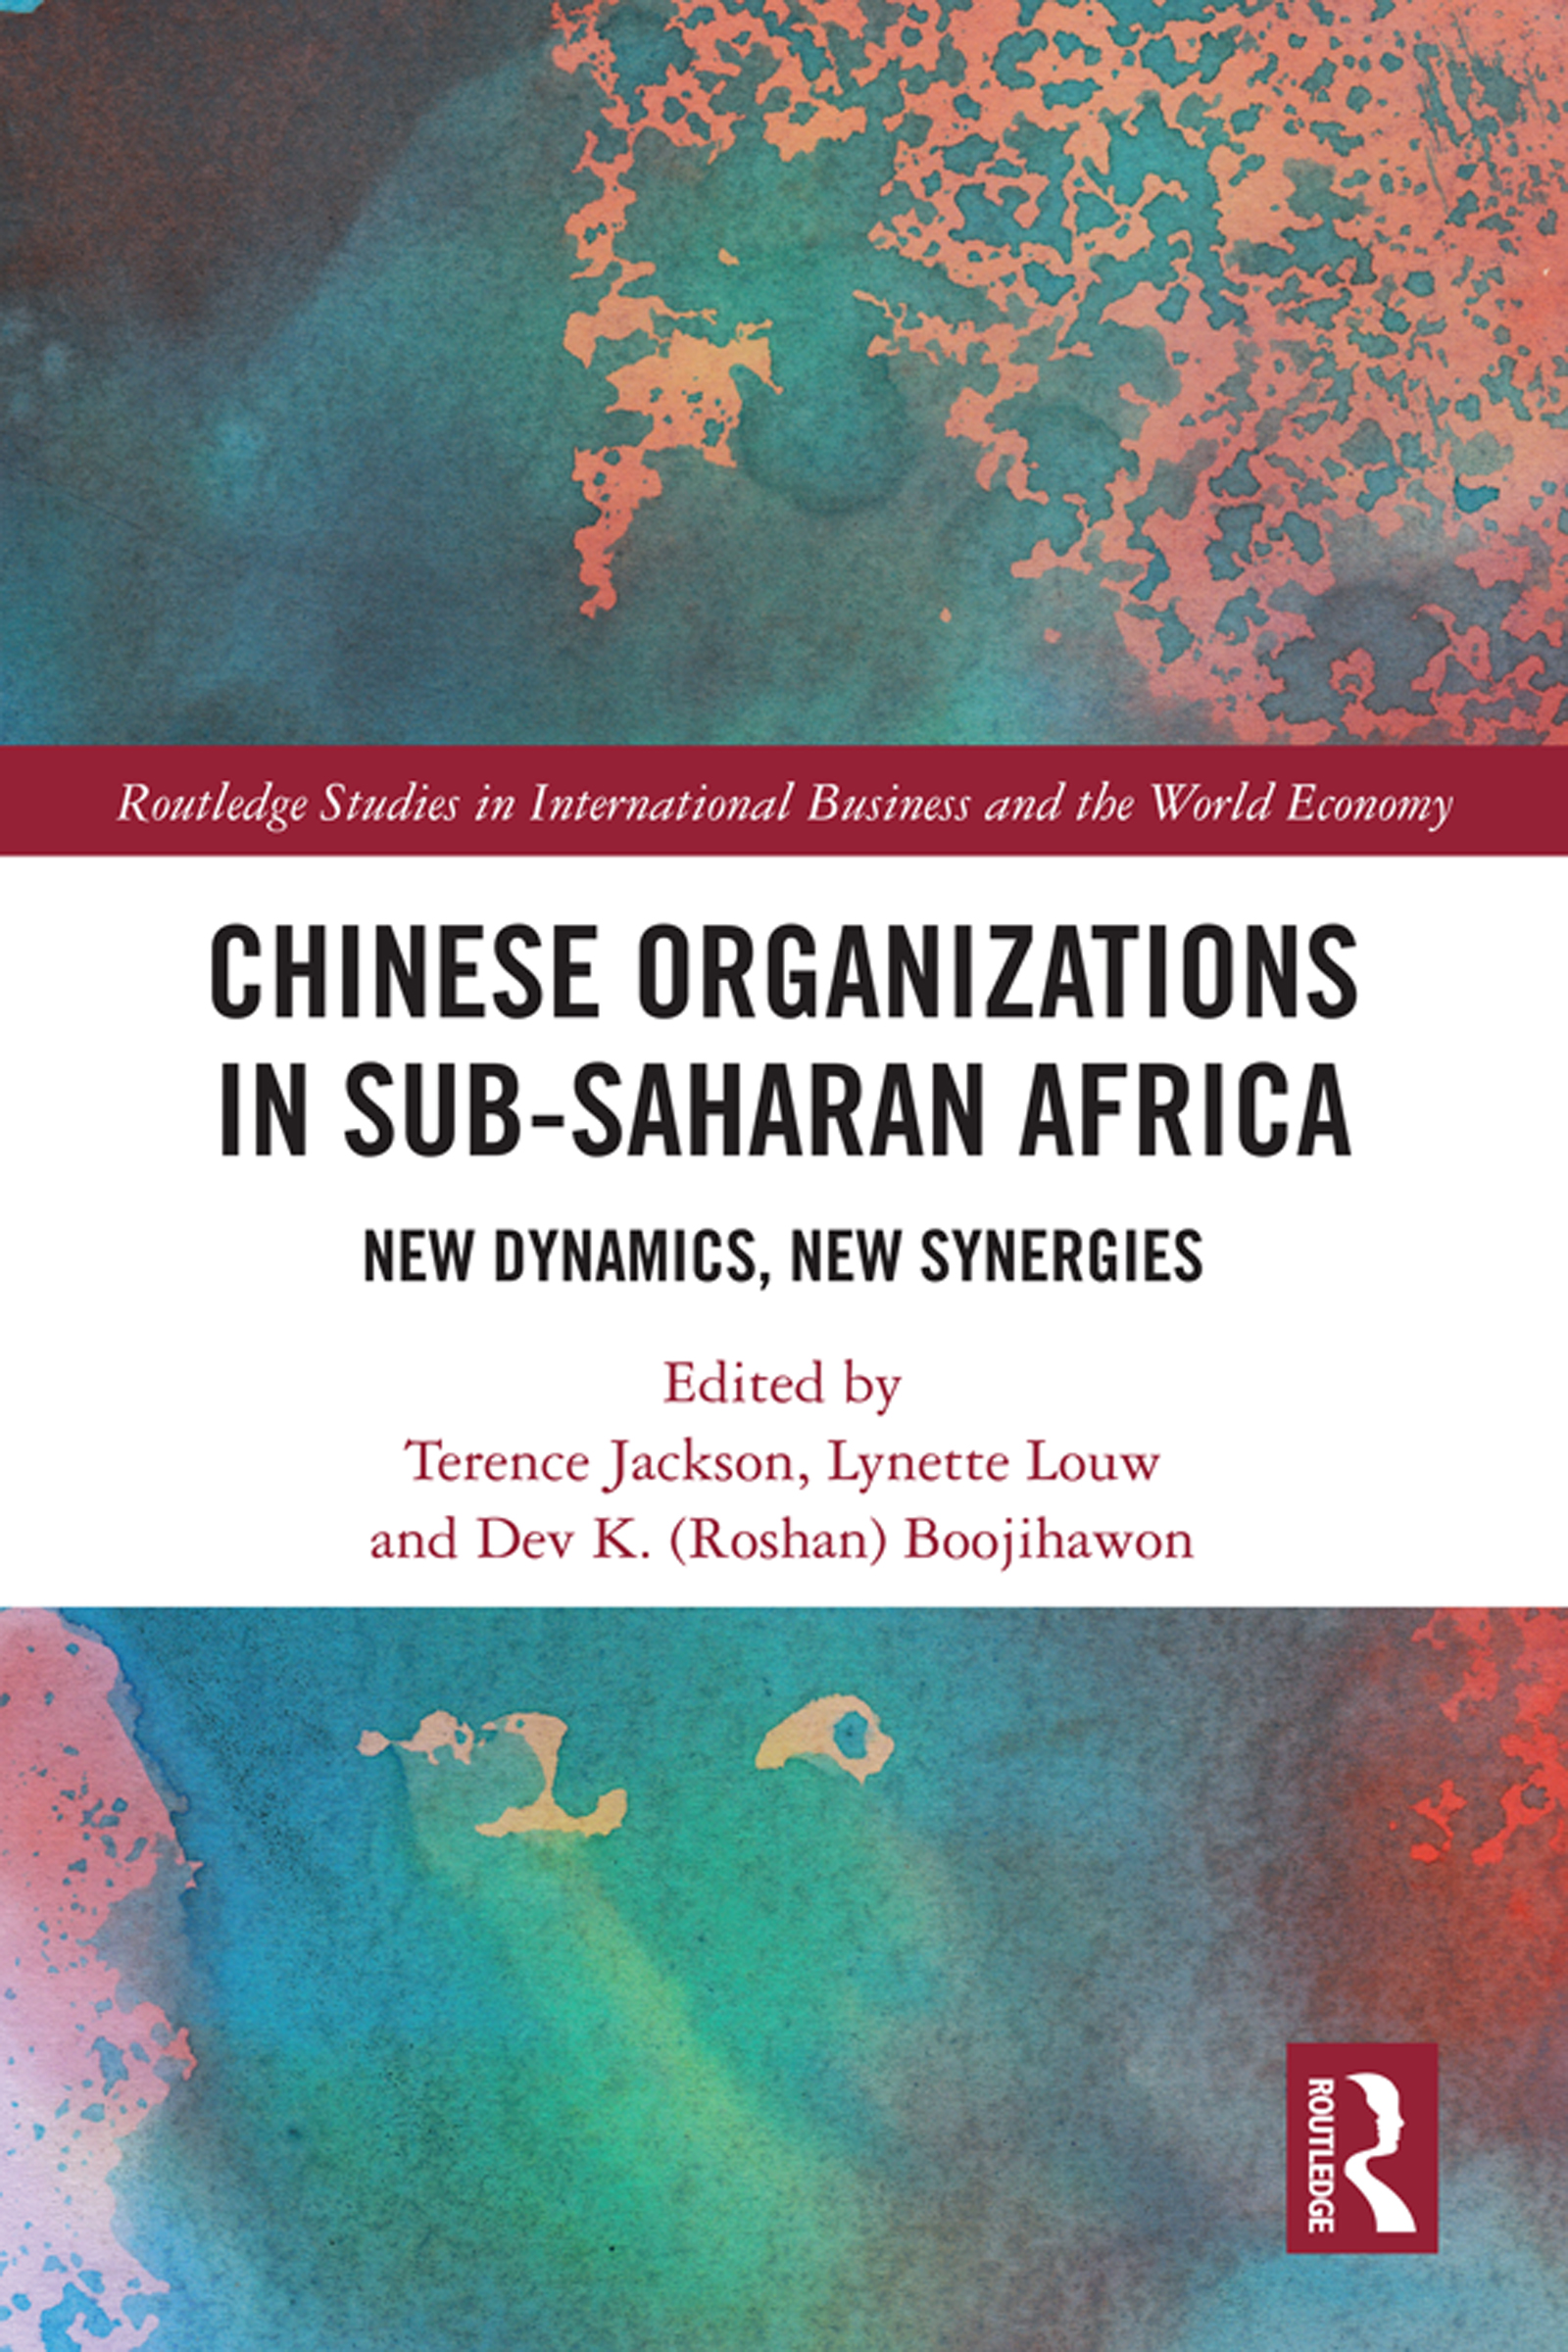 Current research on Chinese organizations in Africa